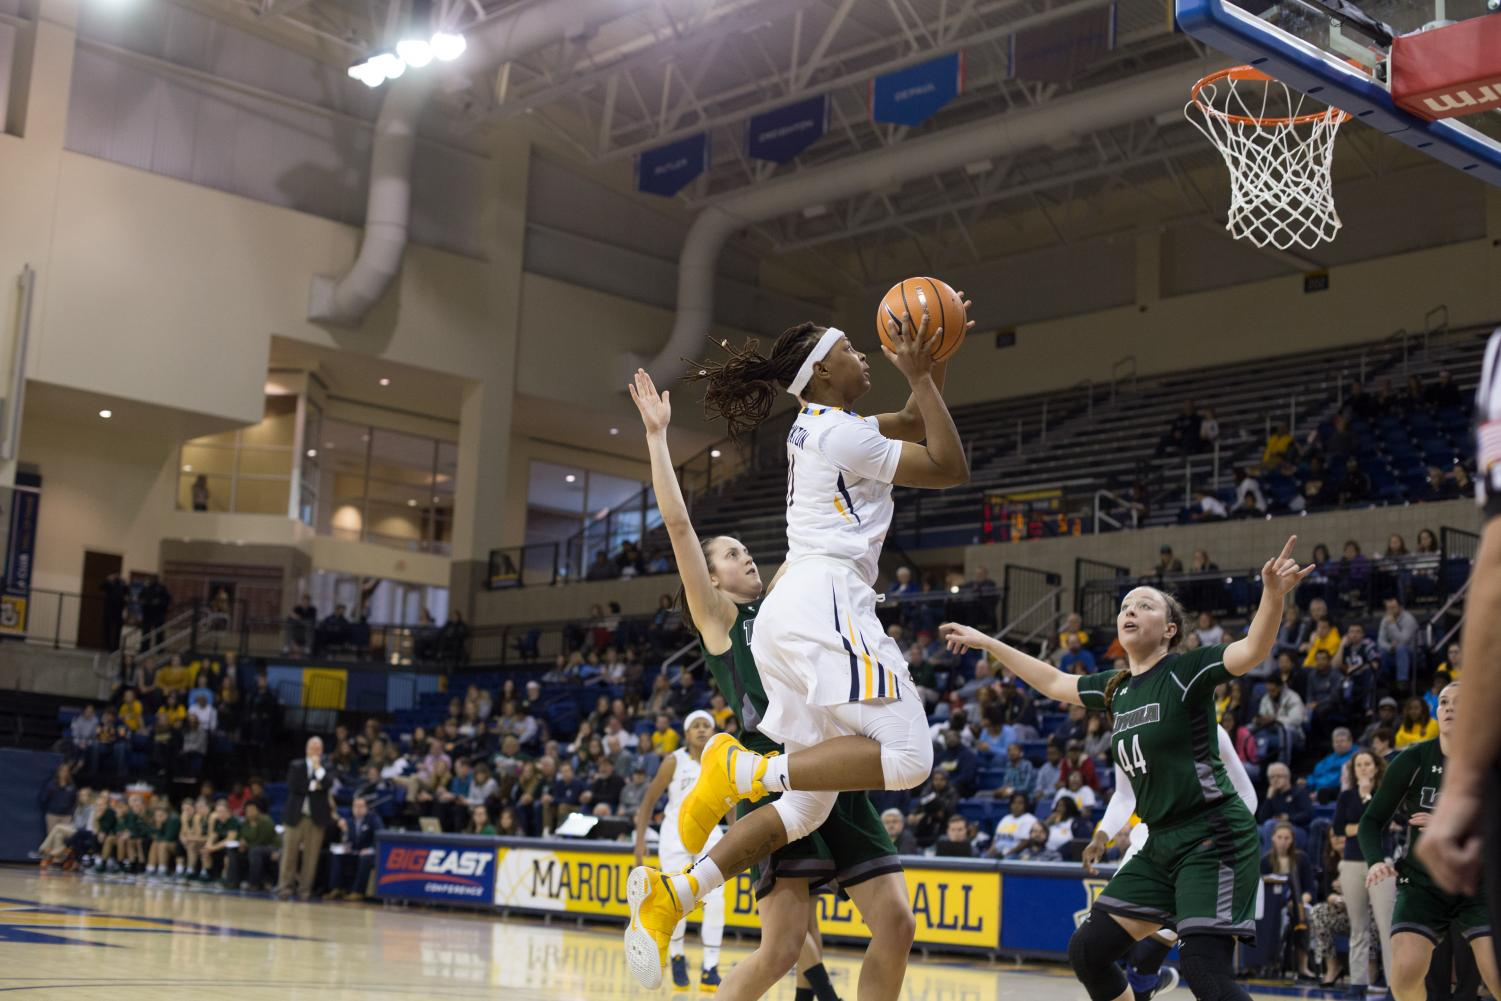 Allazia Blockton goes for a layup against Loyola Maryland. The Golden Eagles open its BIG EAST schedule tonight against St. John's.